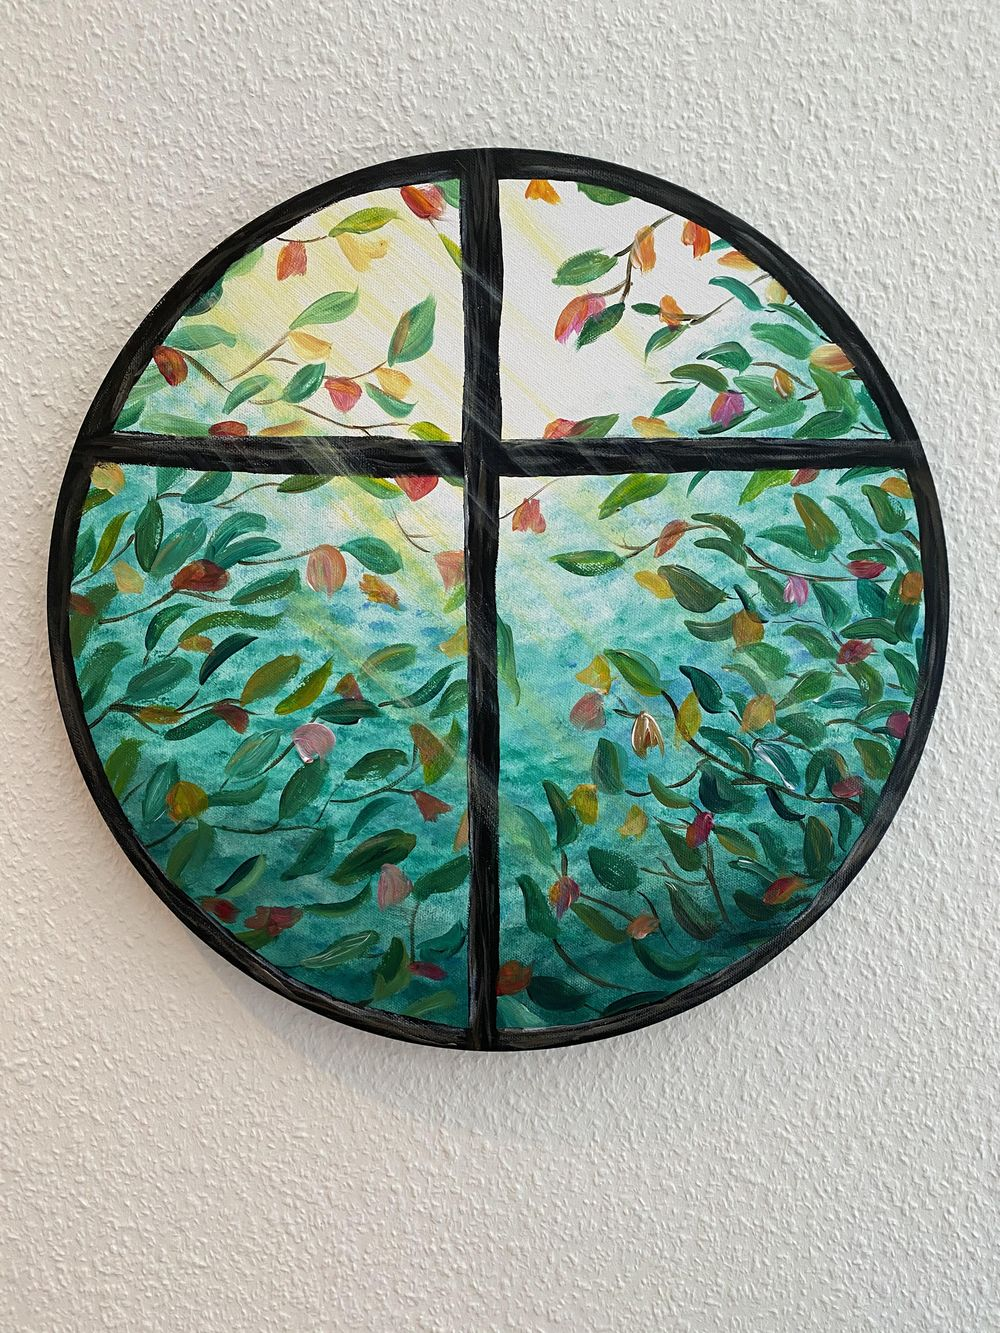 Round window - image 2 - student project